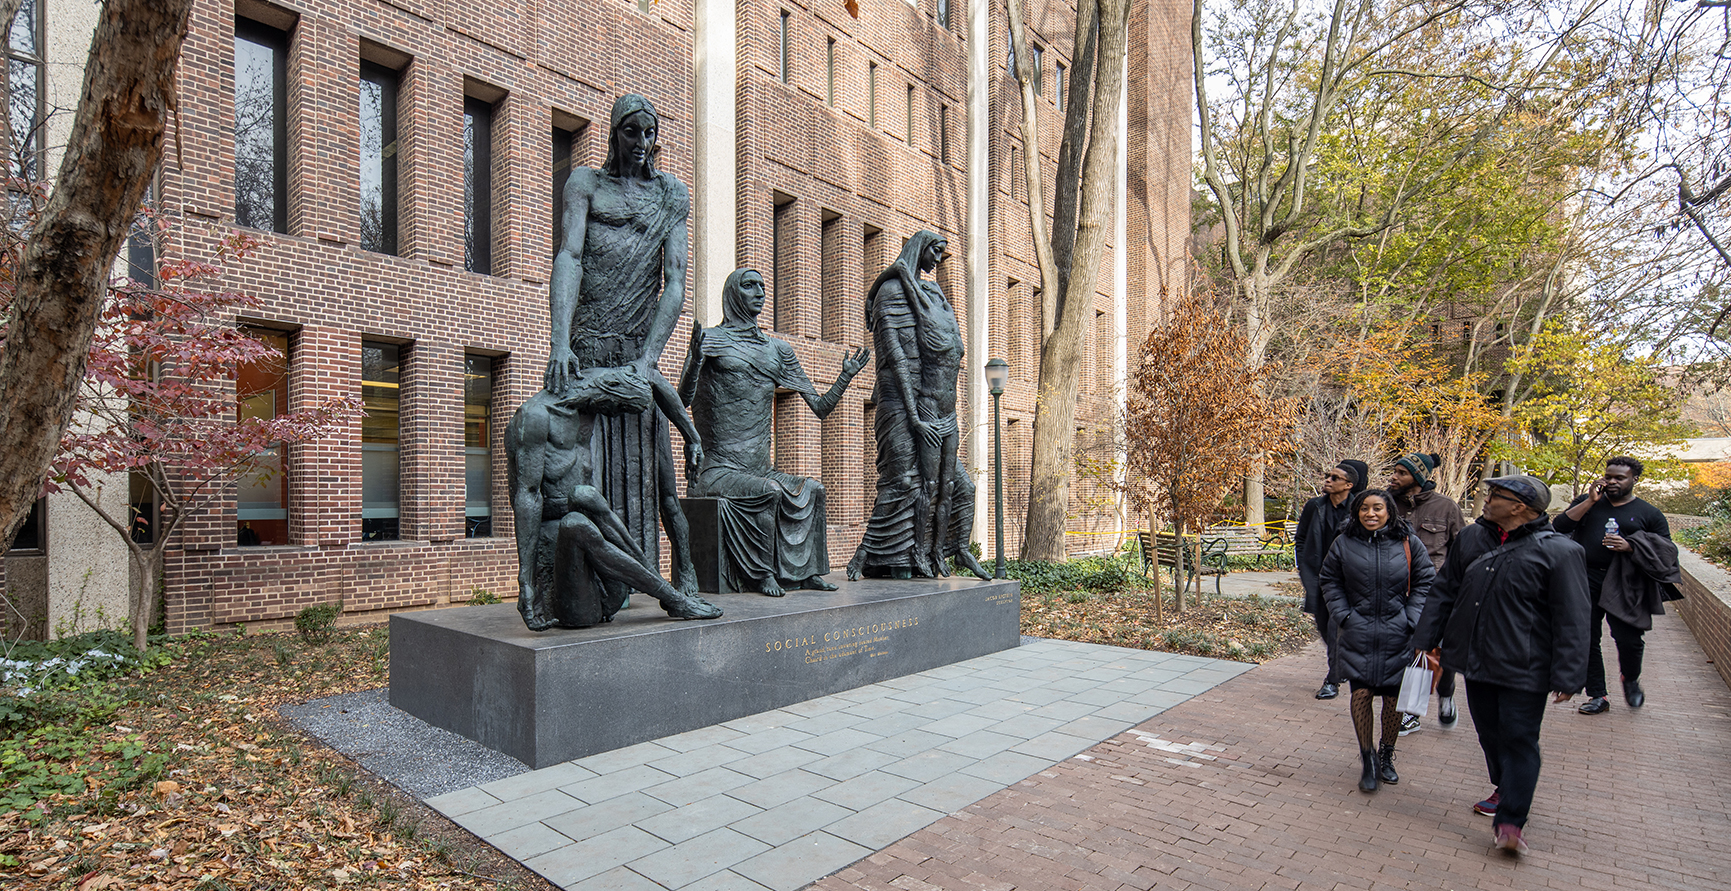 Group of passersby look on at sculpture of four bronze figures in a row